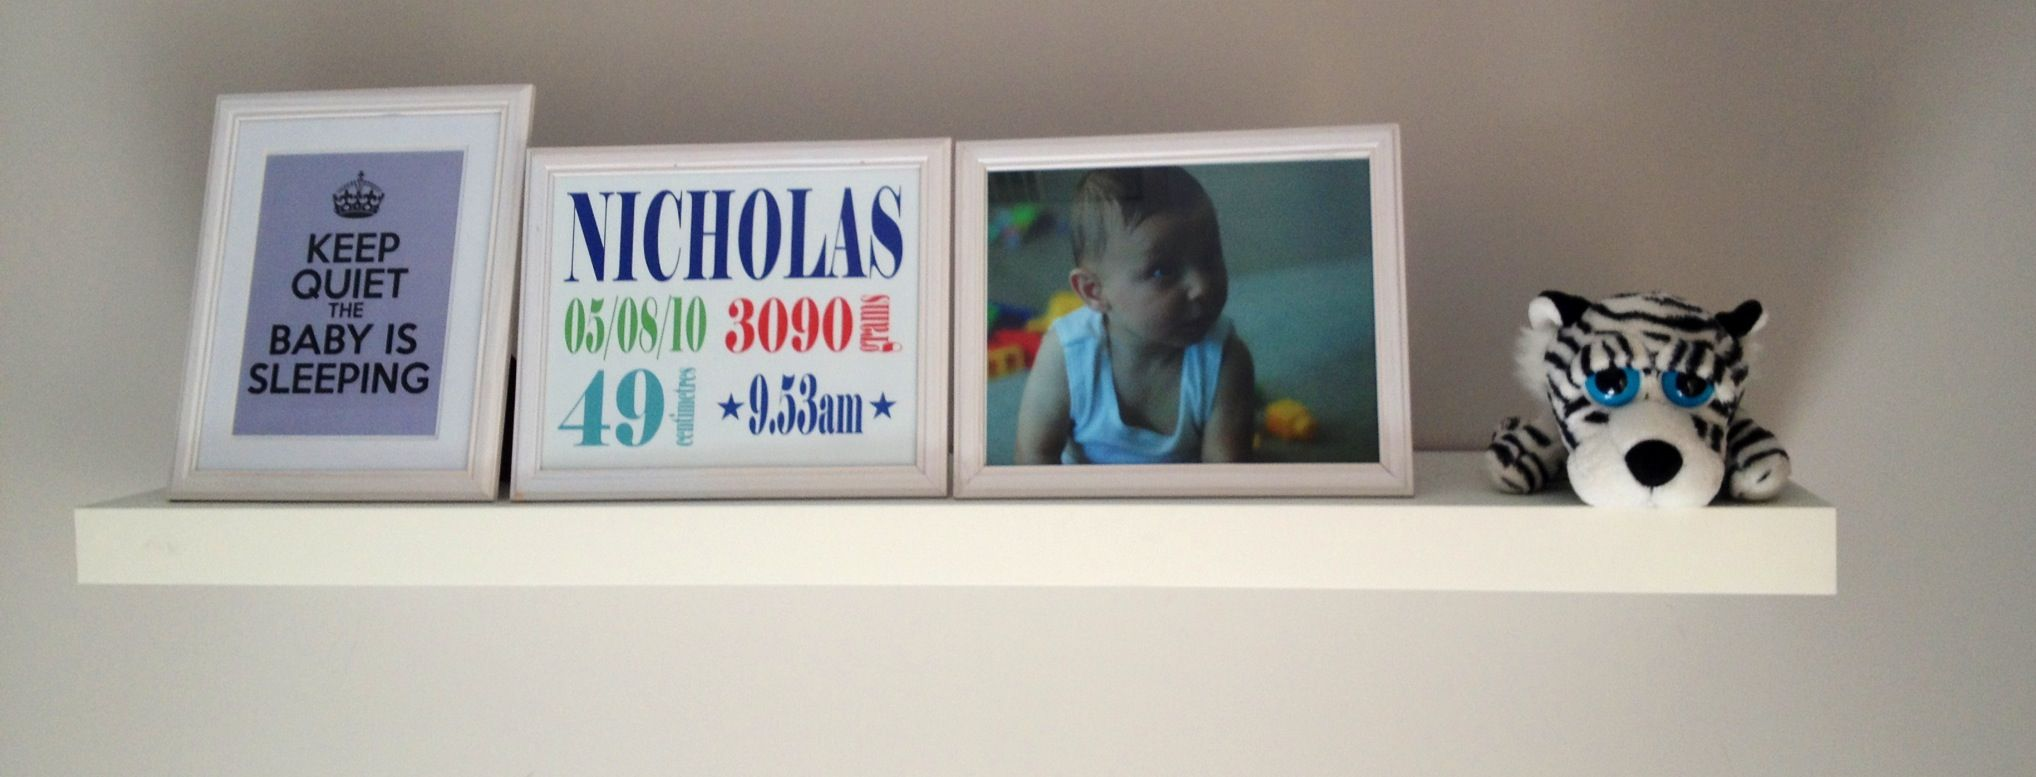 Baby bedroom shelf - Nicholas